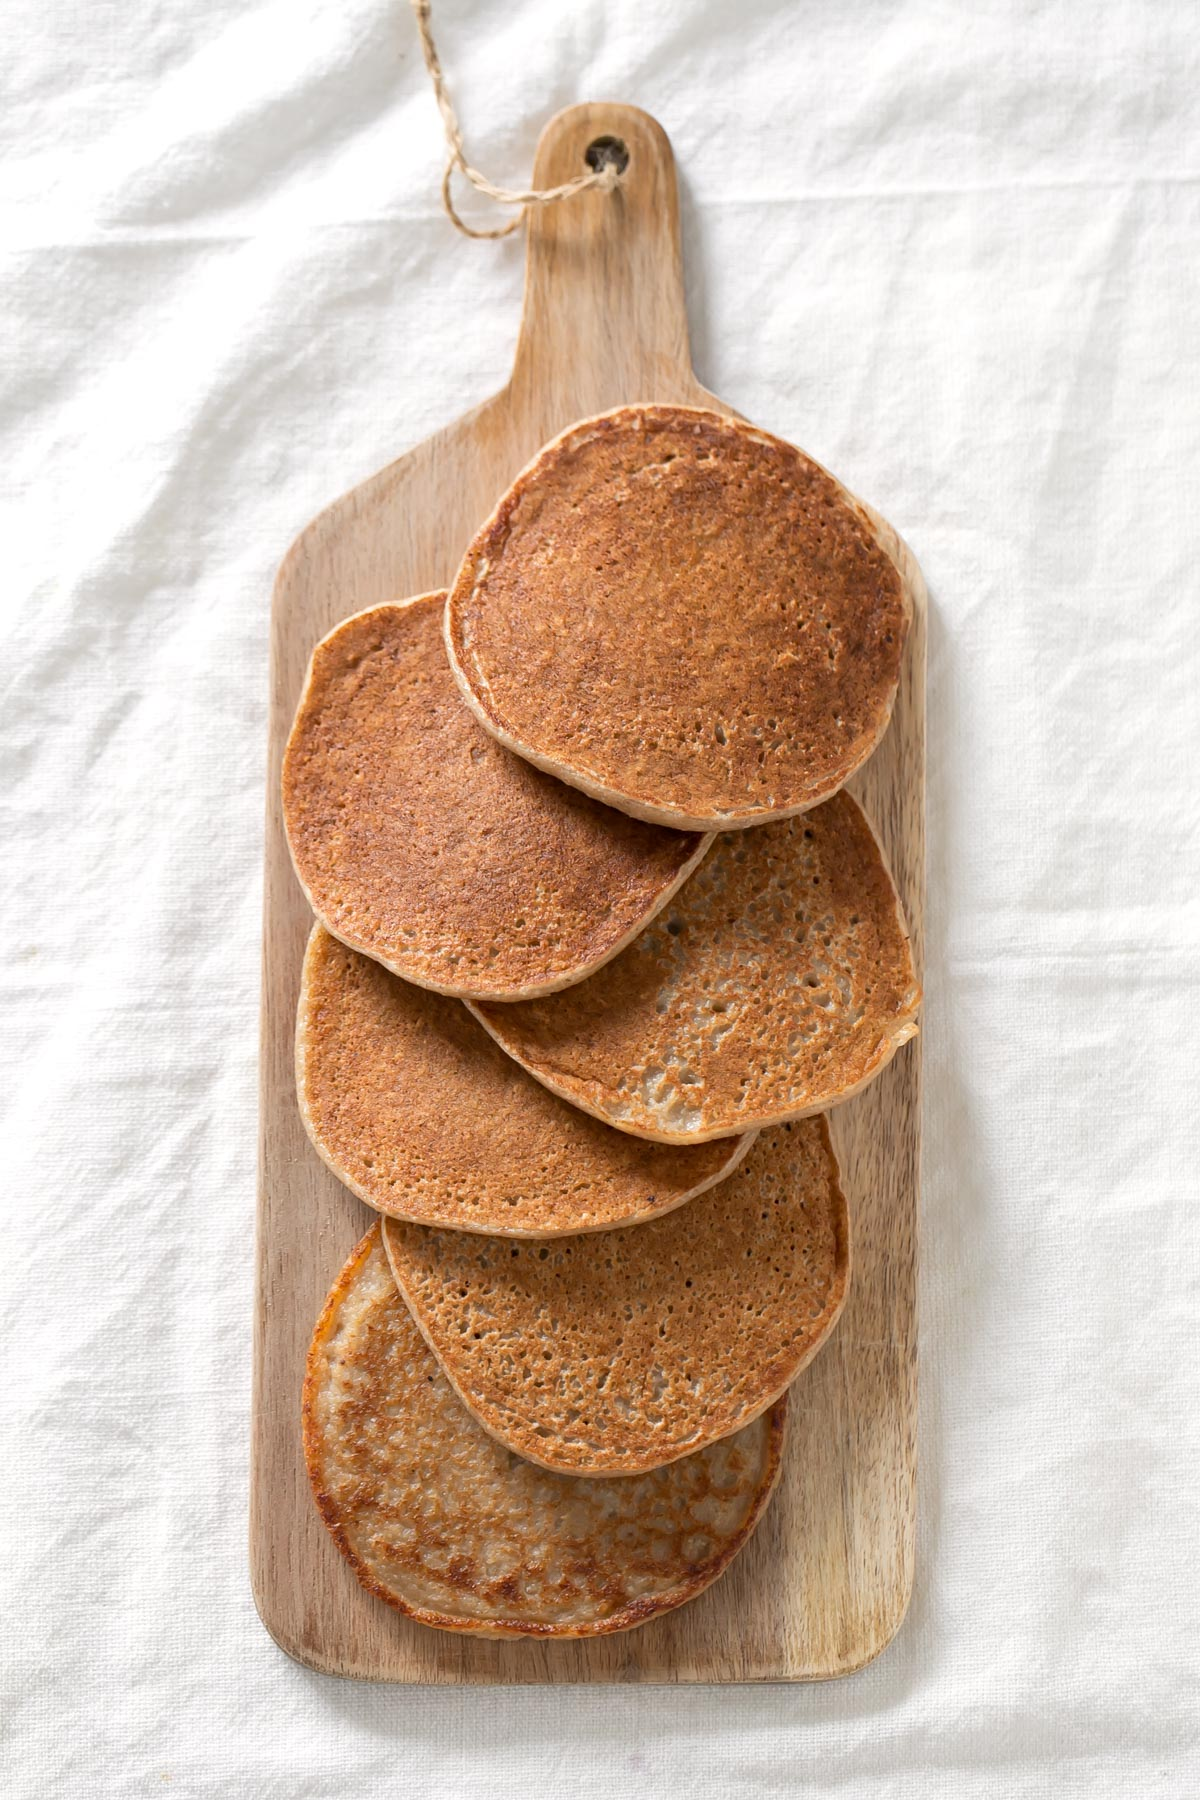 3-Ingredient Vegan GF Pancakes